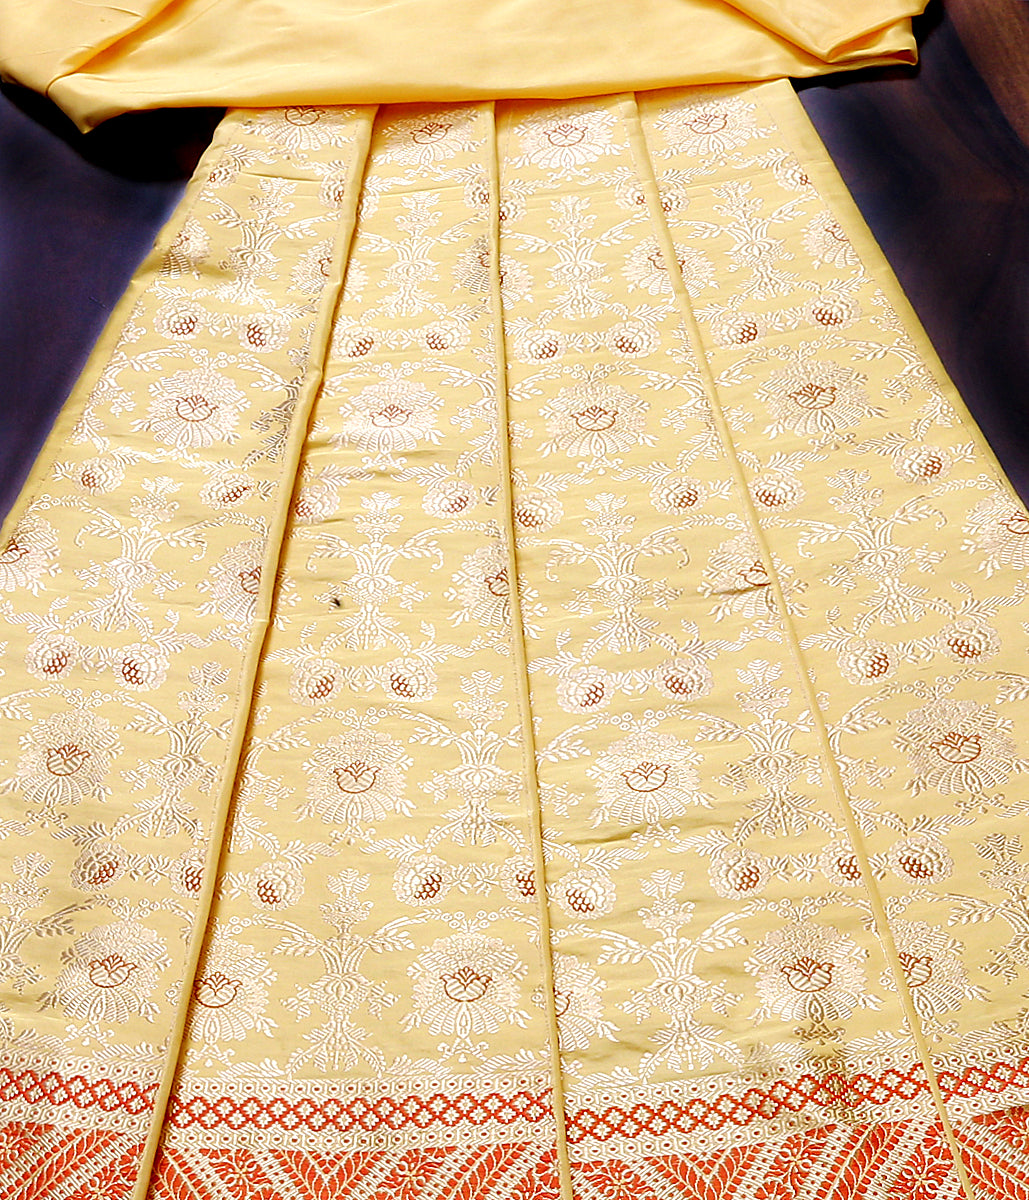 Handwoven Banarasi Lehenga in a pastel yellow color with meenakari